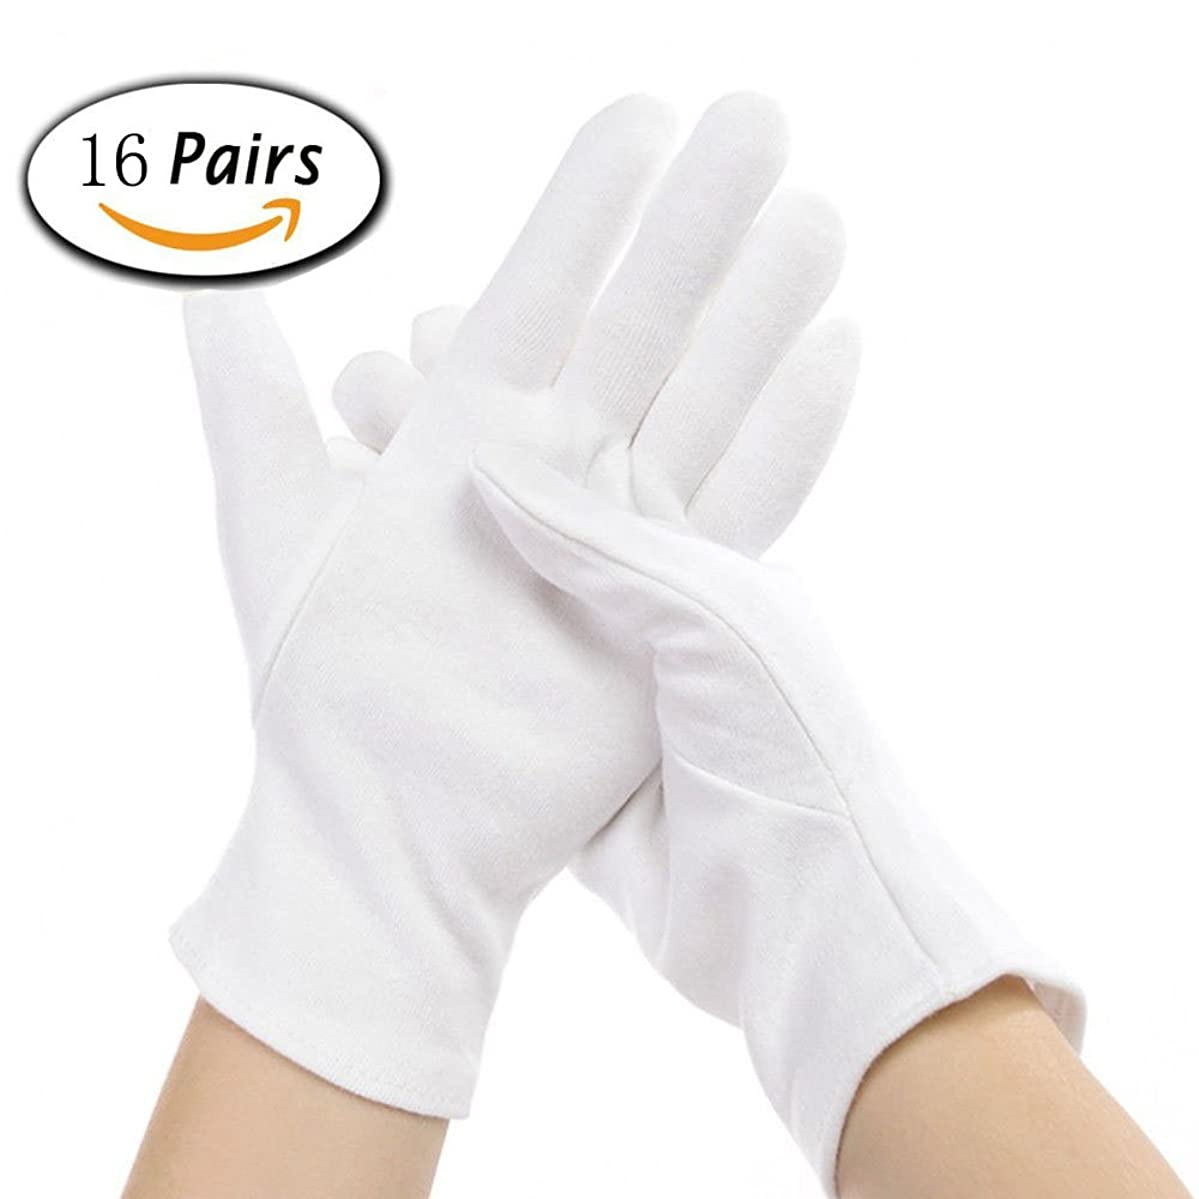 16 Pairs White Cotton Gloves for Coin Jewelry Silver Inspection, 8.6